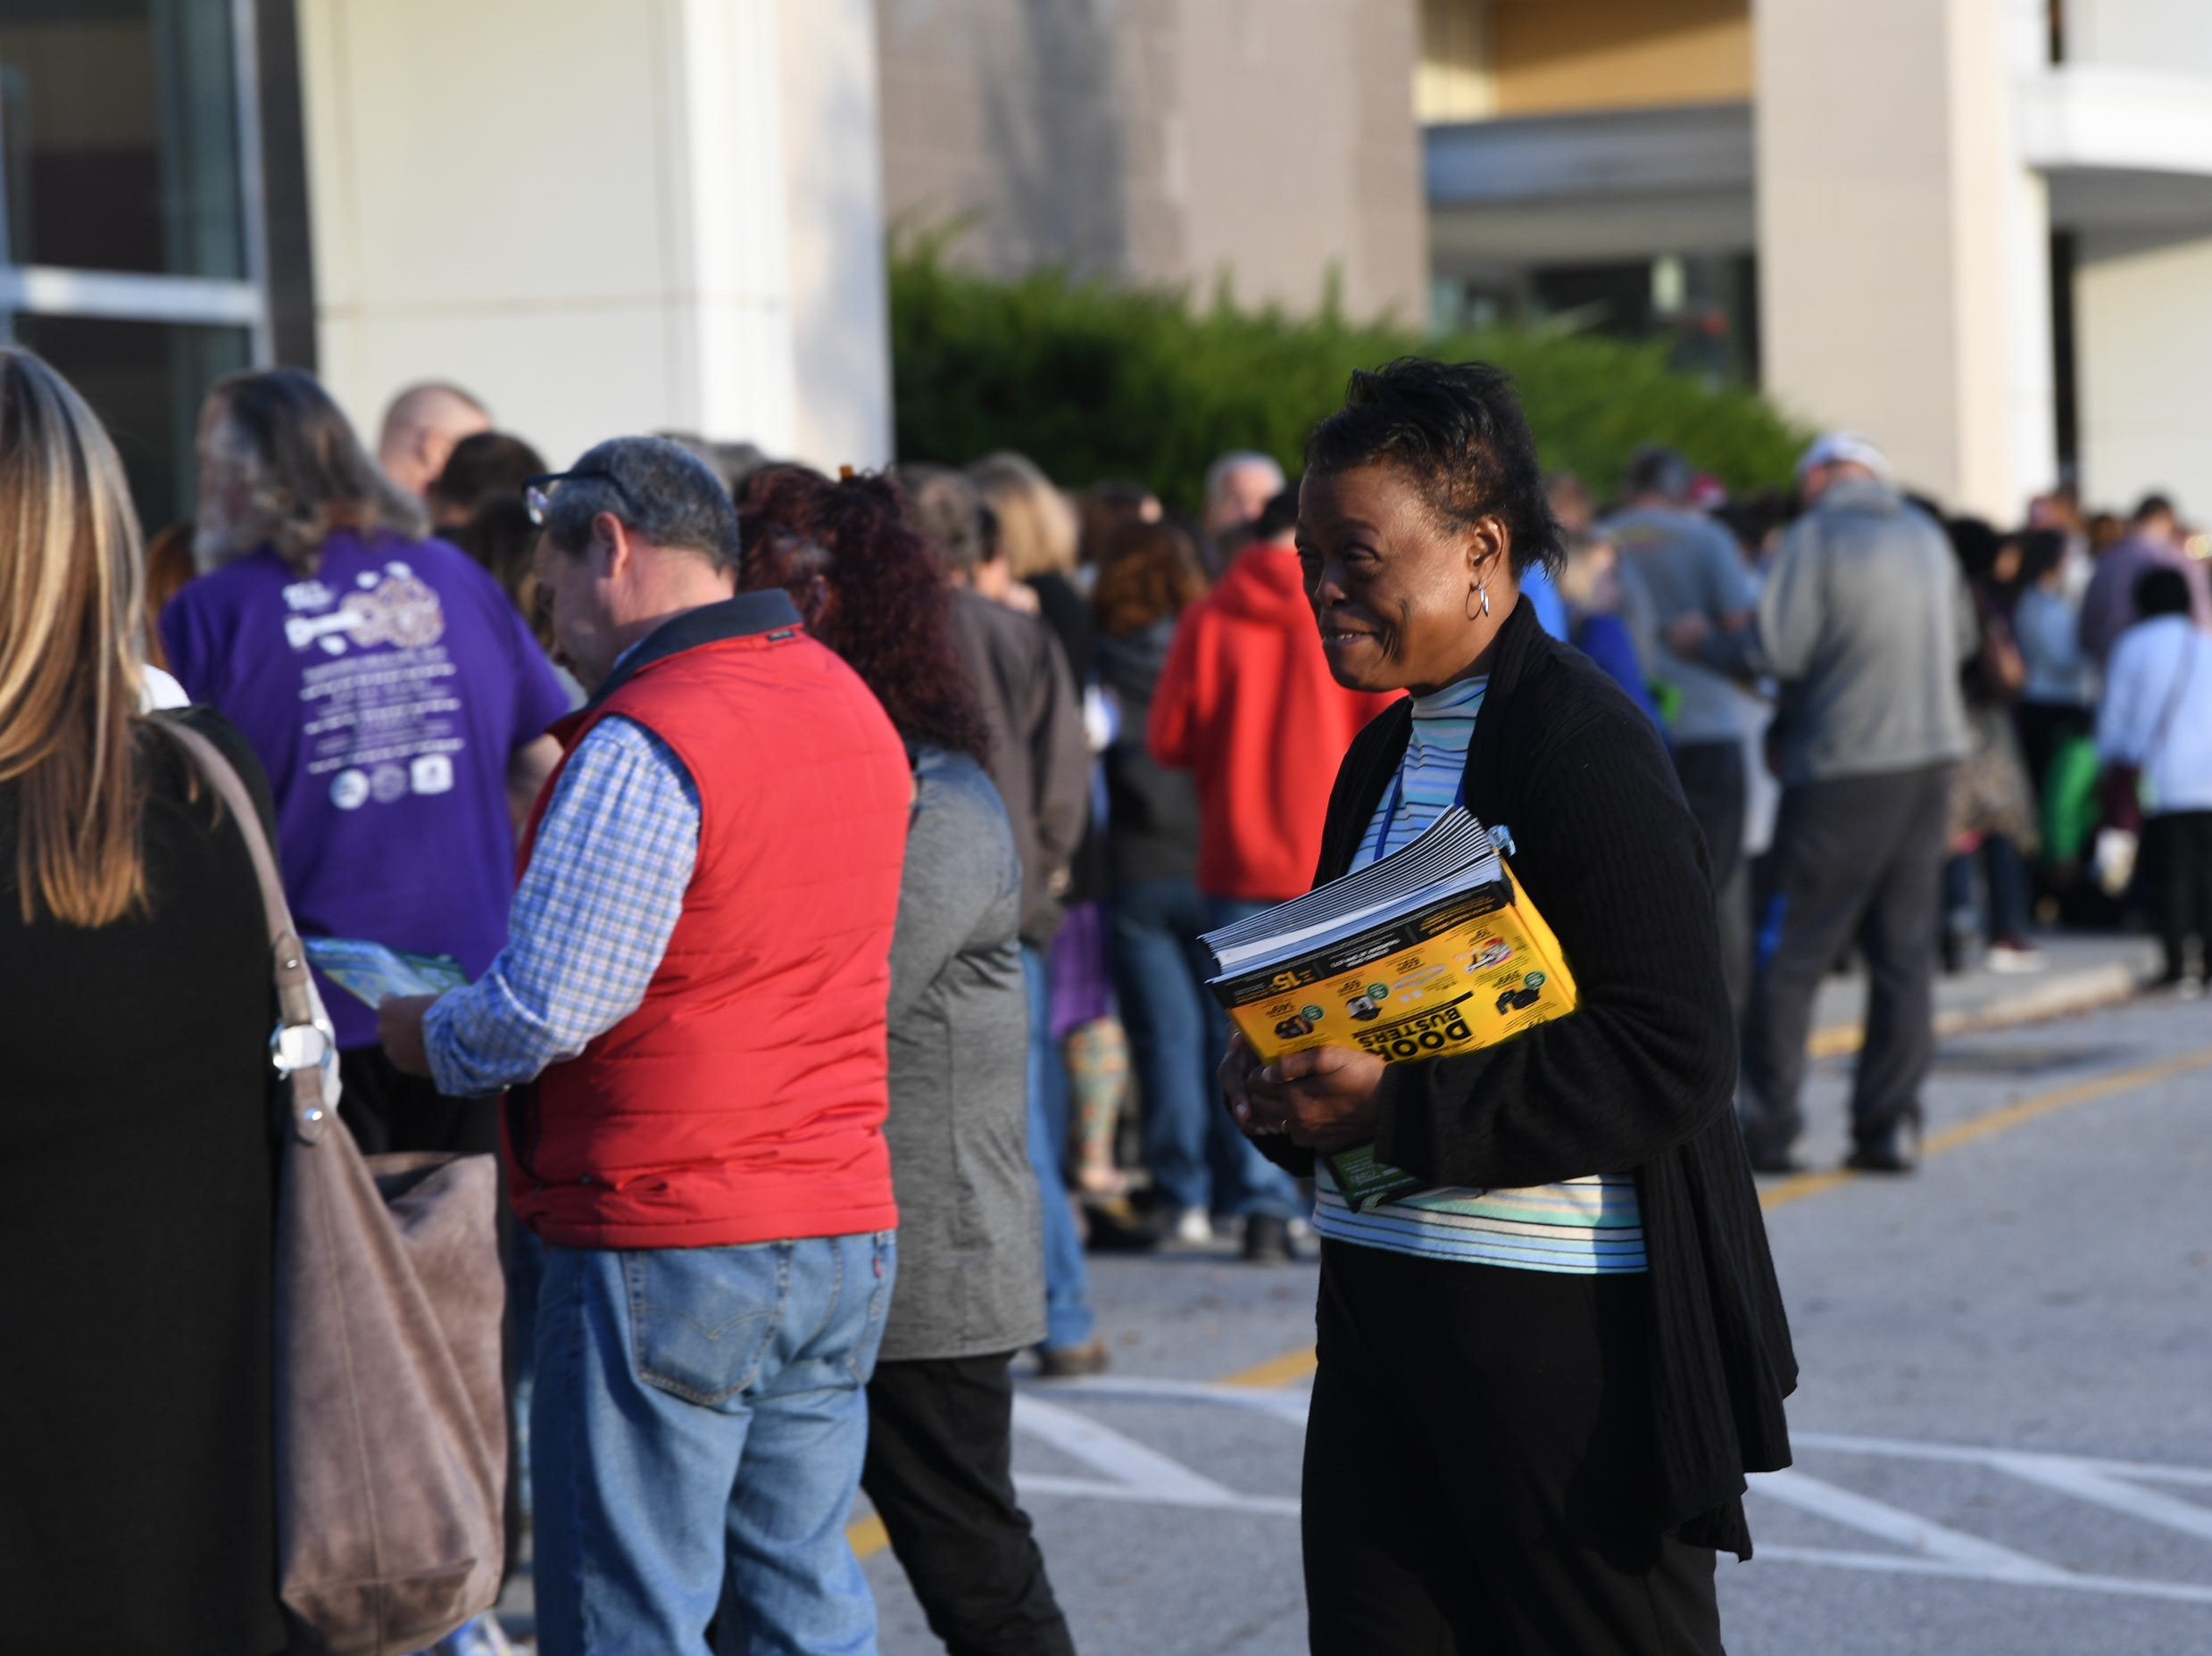 Giselle Boyd, a sales associate for Kohl's in Anderson helps customers before doors open for Black Friday sales at Kohl's in Anderson on Thanksgiving Day, Thursday, November 22, 2018.